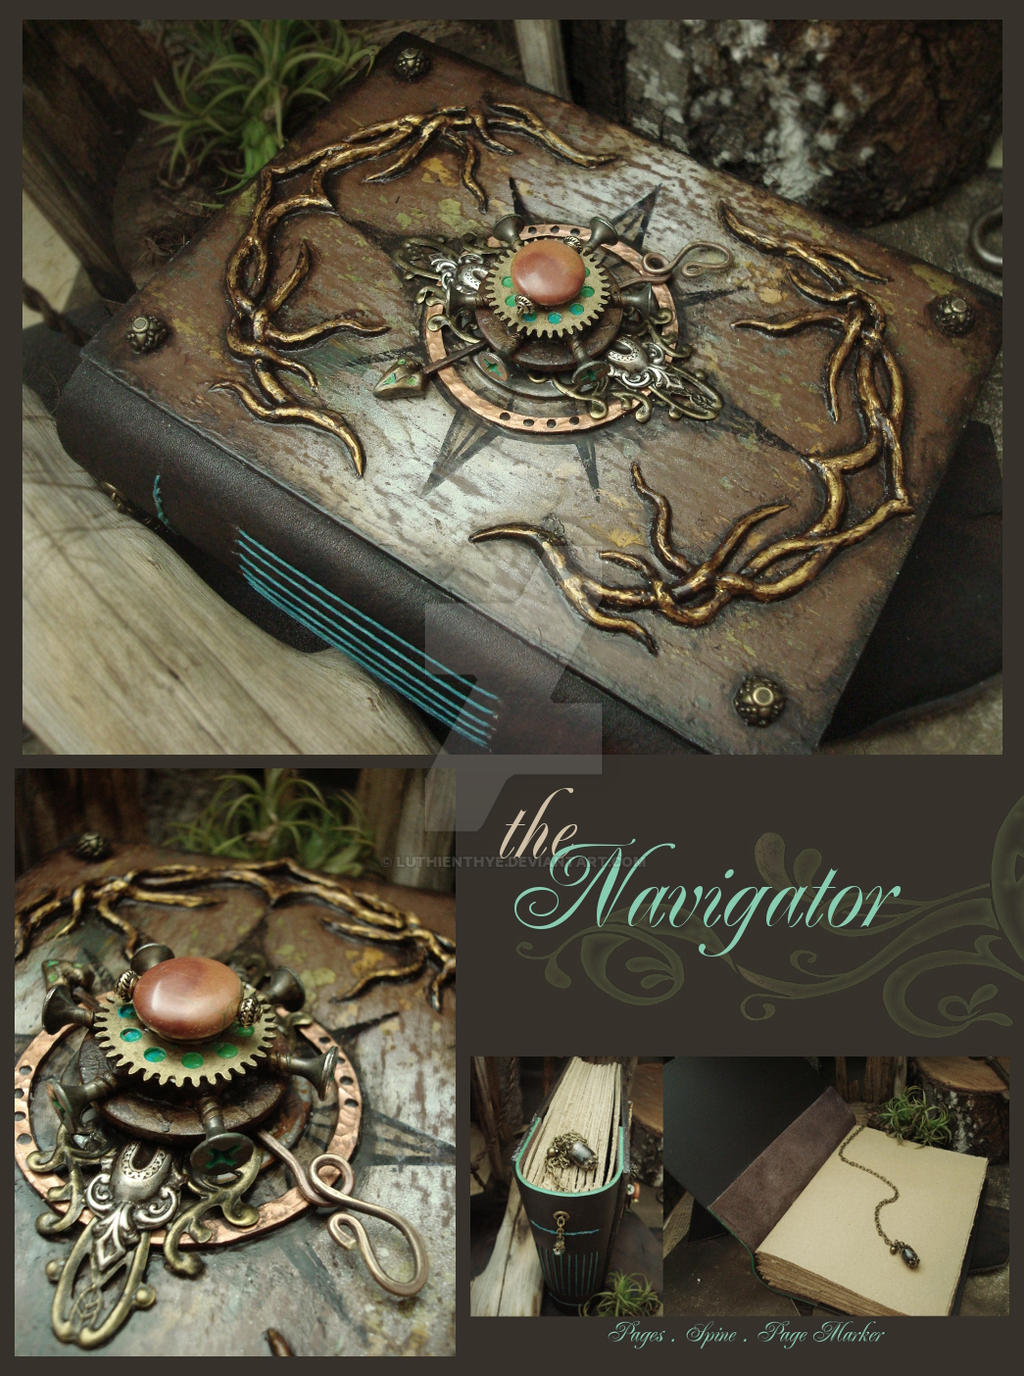 the Navigator by luthien27